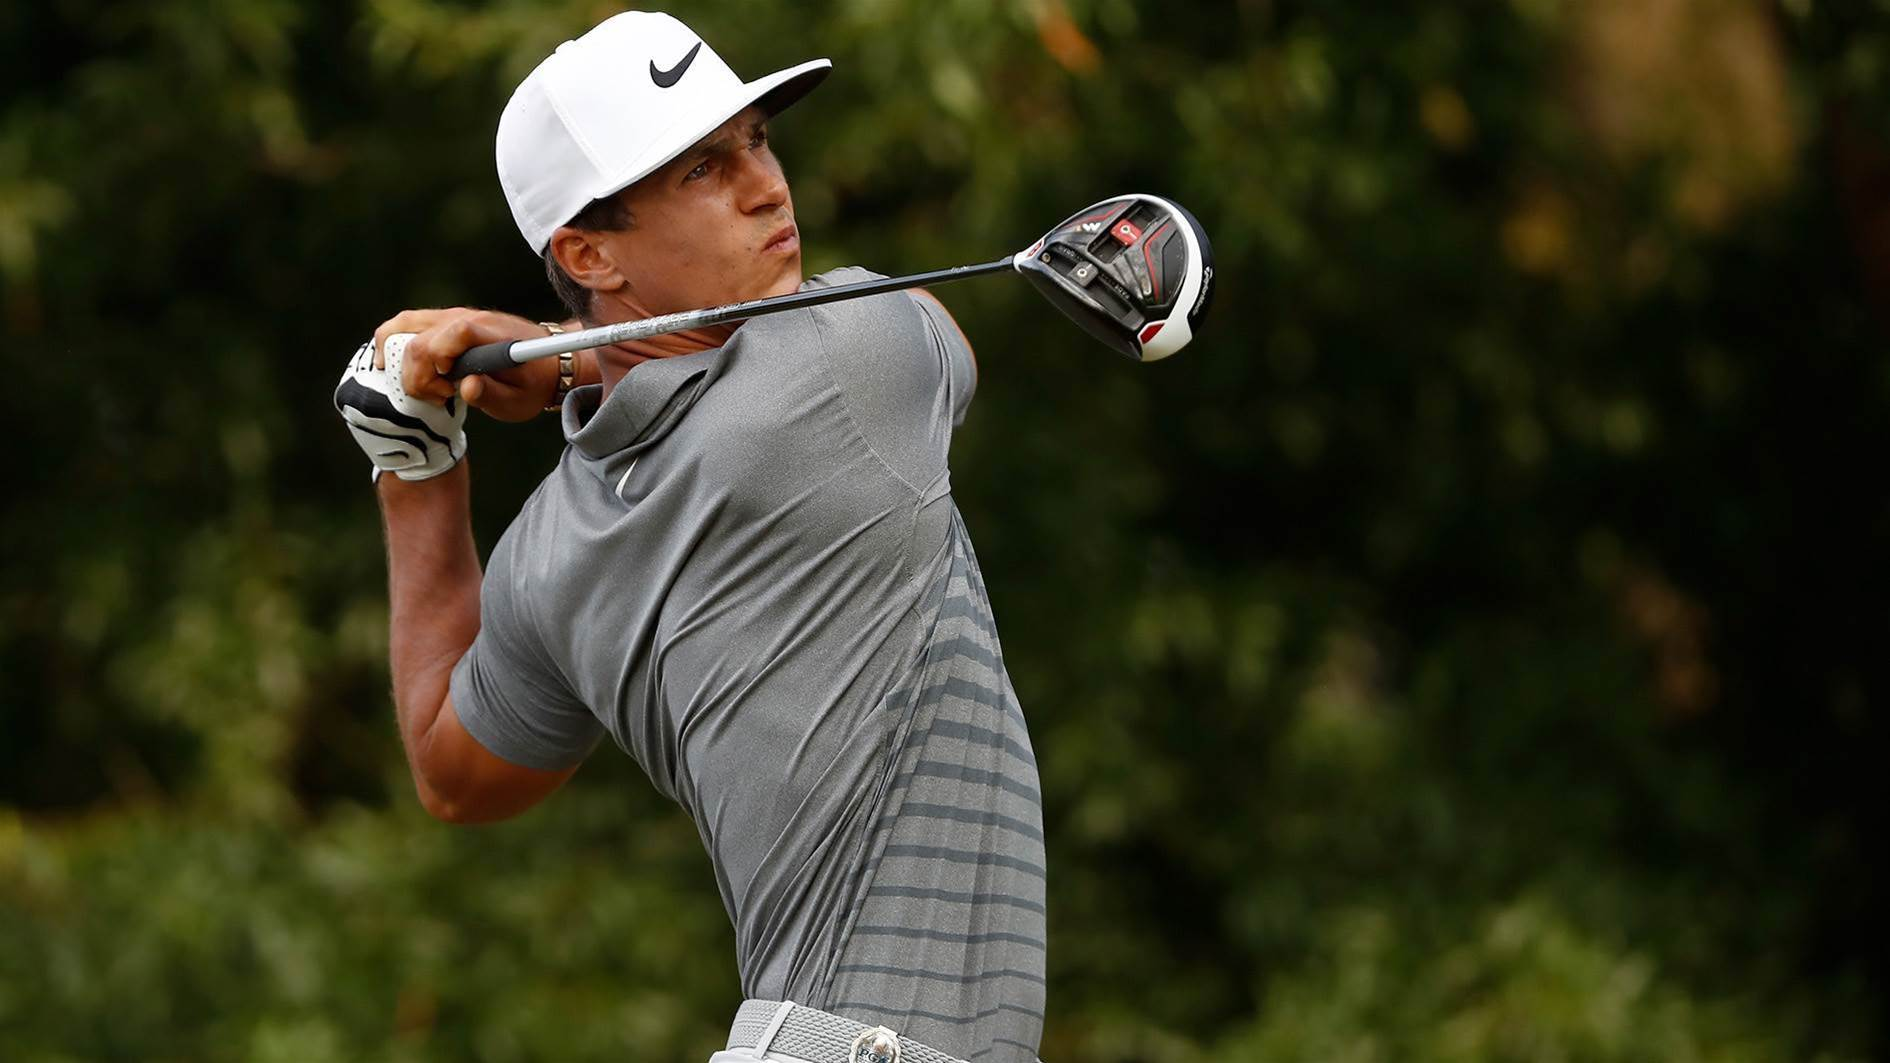 PGA: Big hitters dominate tough opening round